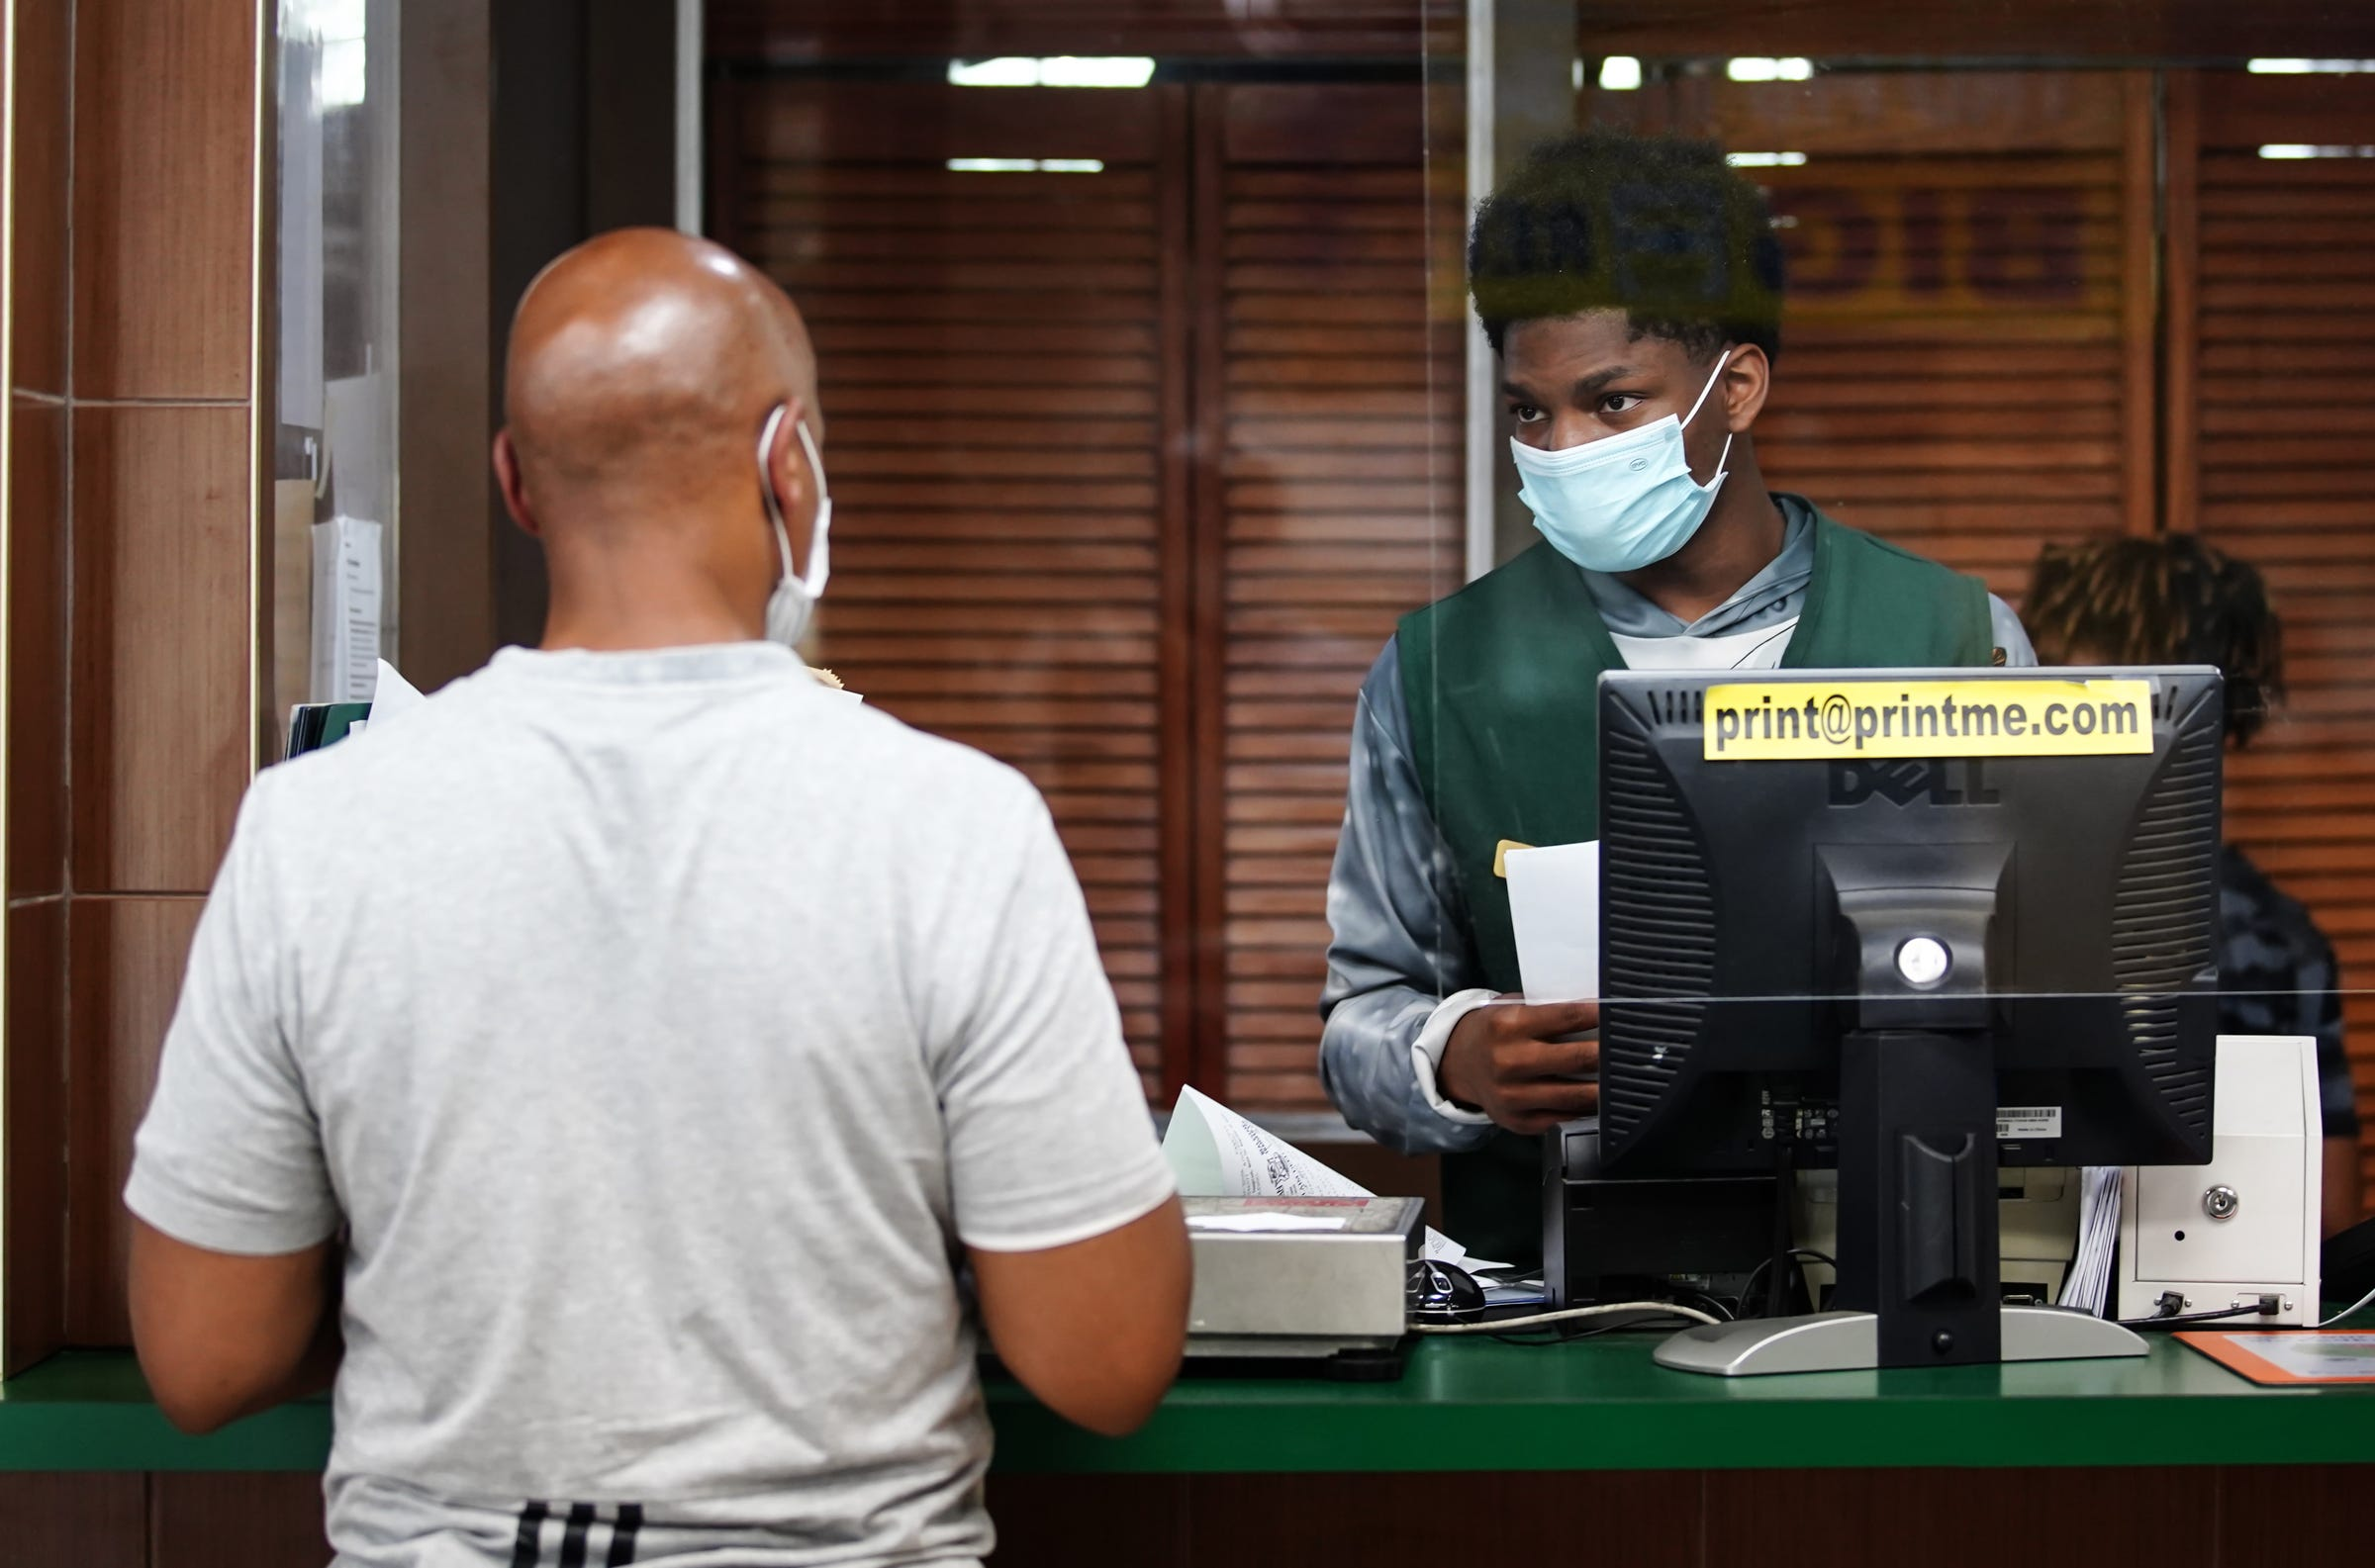 Jazel Hall, 19, of Detroit helps customers at Hallstarz Business Center in Detroit on July 15, 2021. The business center is a one-stop-shop in the Bagley neighborhood. A neighborhood source for packing, shipping, printing and other business services. Created 36 years ago by a Detroit couple, Milton Hall Jr. and Vanessa Hall. The business is now run by their oldest son, Mario Hall with help from his five brothers.